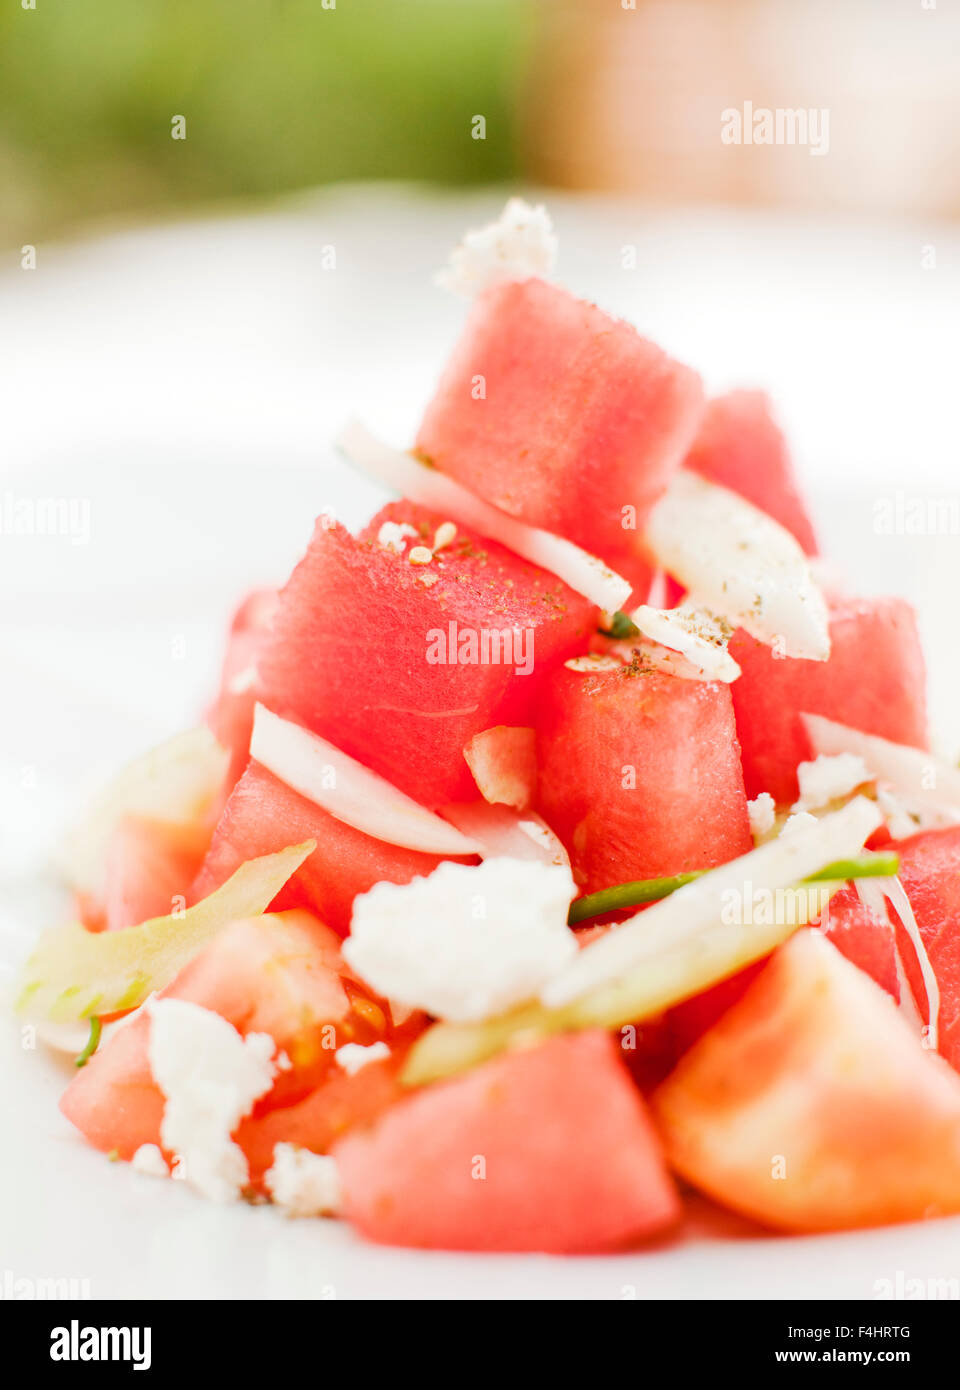 Watermelon and Feta cheese salad. Cancun, Quintana Roo, Mexico.. - Stock Image